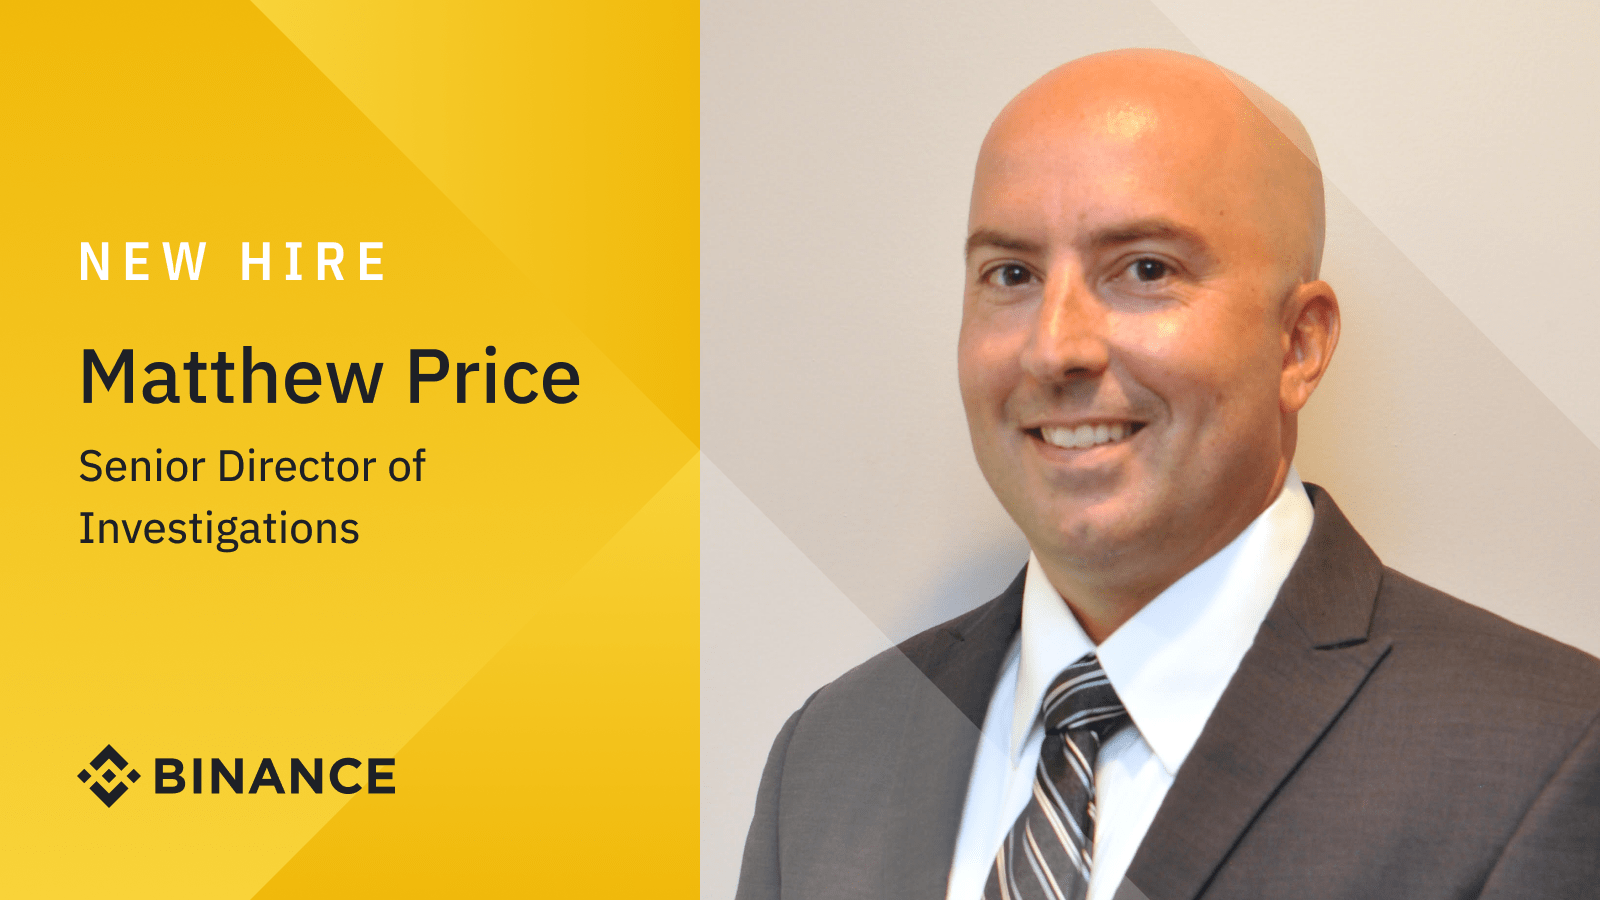 Former IRS-CI Special Agent Matthew Price joins Binance as Senior Director of Investigations   Binance Blogon October 8, 2021 at 6:39 am